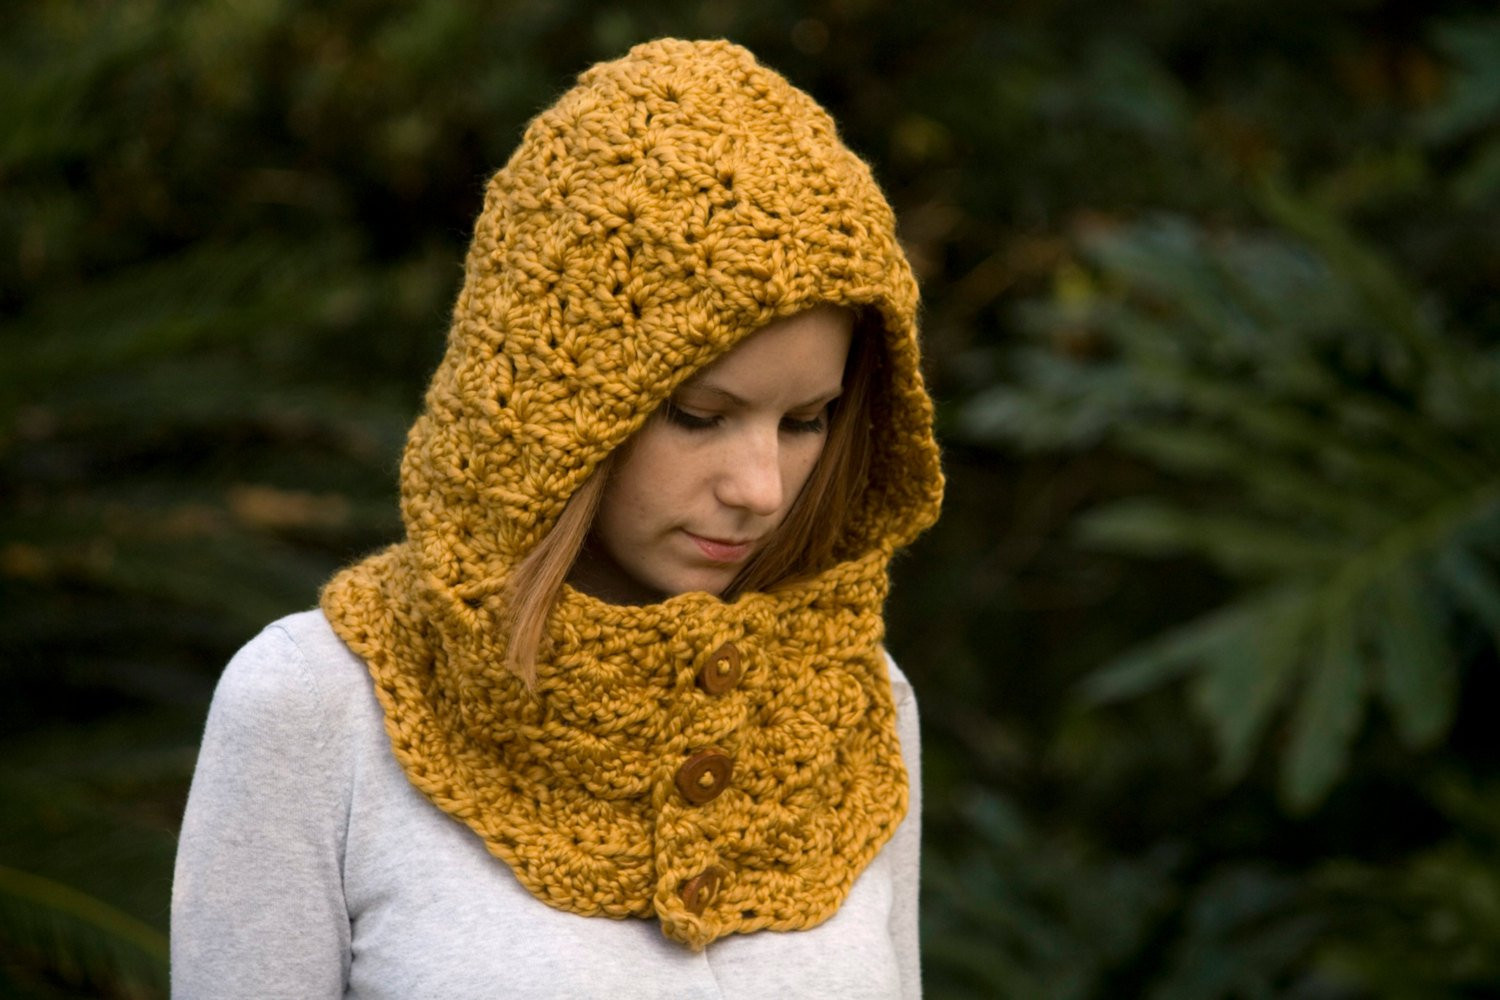 Crochet Cowl Scarf Elegant Hooded Cowl Wood button Crochet Hoo Scoo Mustard Of Awesome 42 Pics Crochet Cowl Scarf